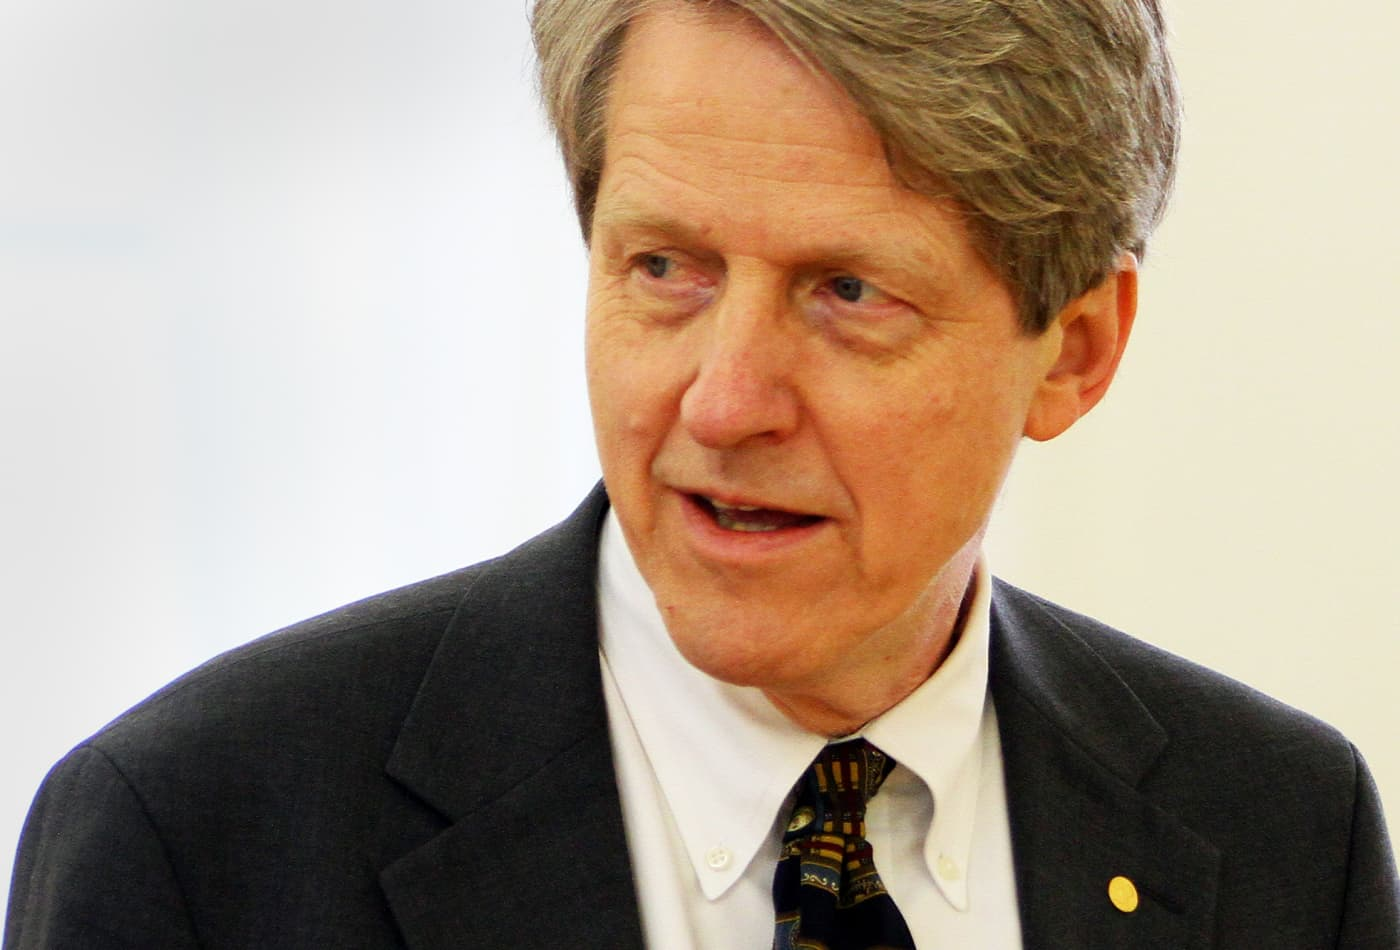 Nobel-winning economist Robert Shiller says the nation's jobs picture is not as bright as it seems